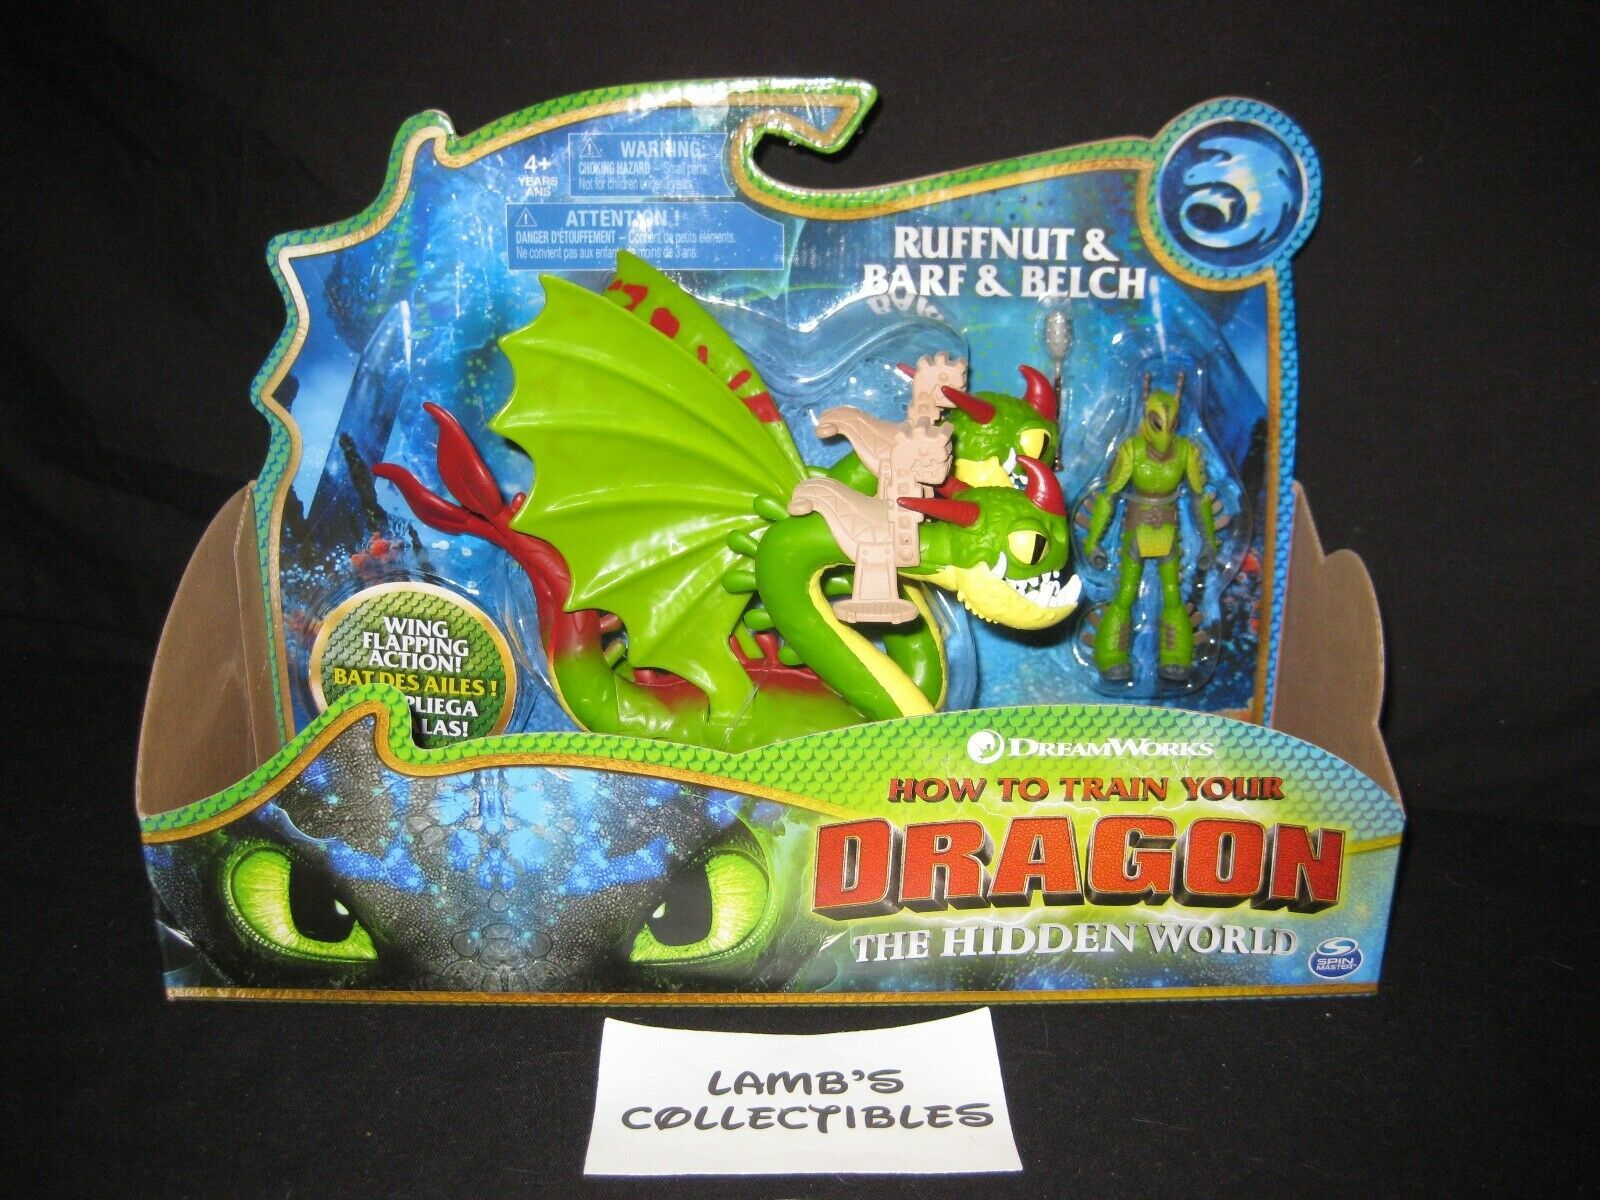 Primary image for How to train your Dragon 3 The Hidden World Ruffnut & Barf & Belch riding saddle